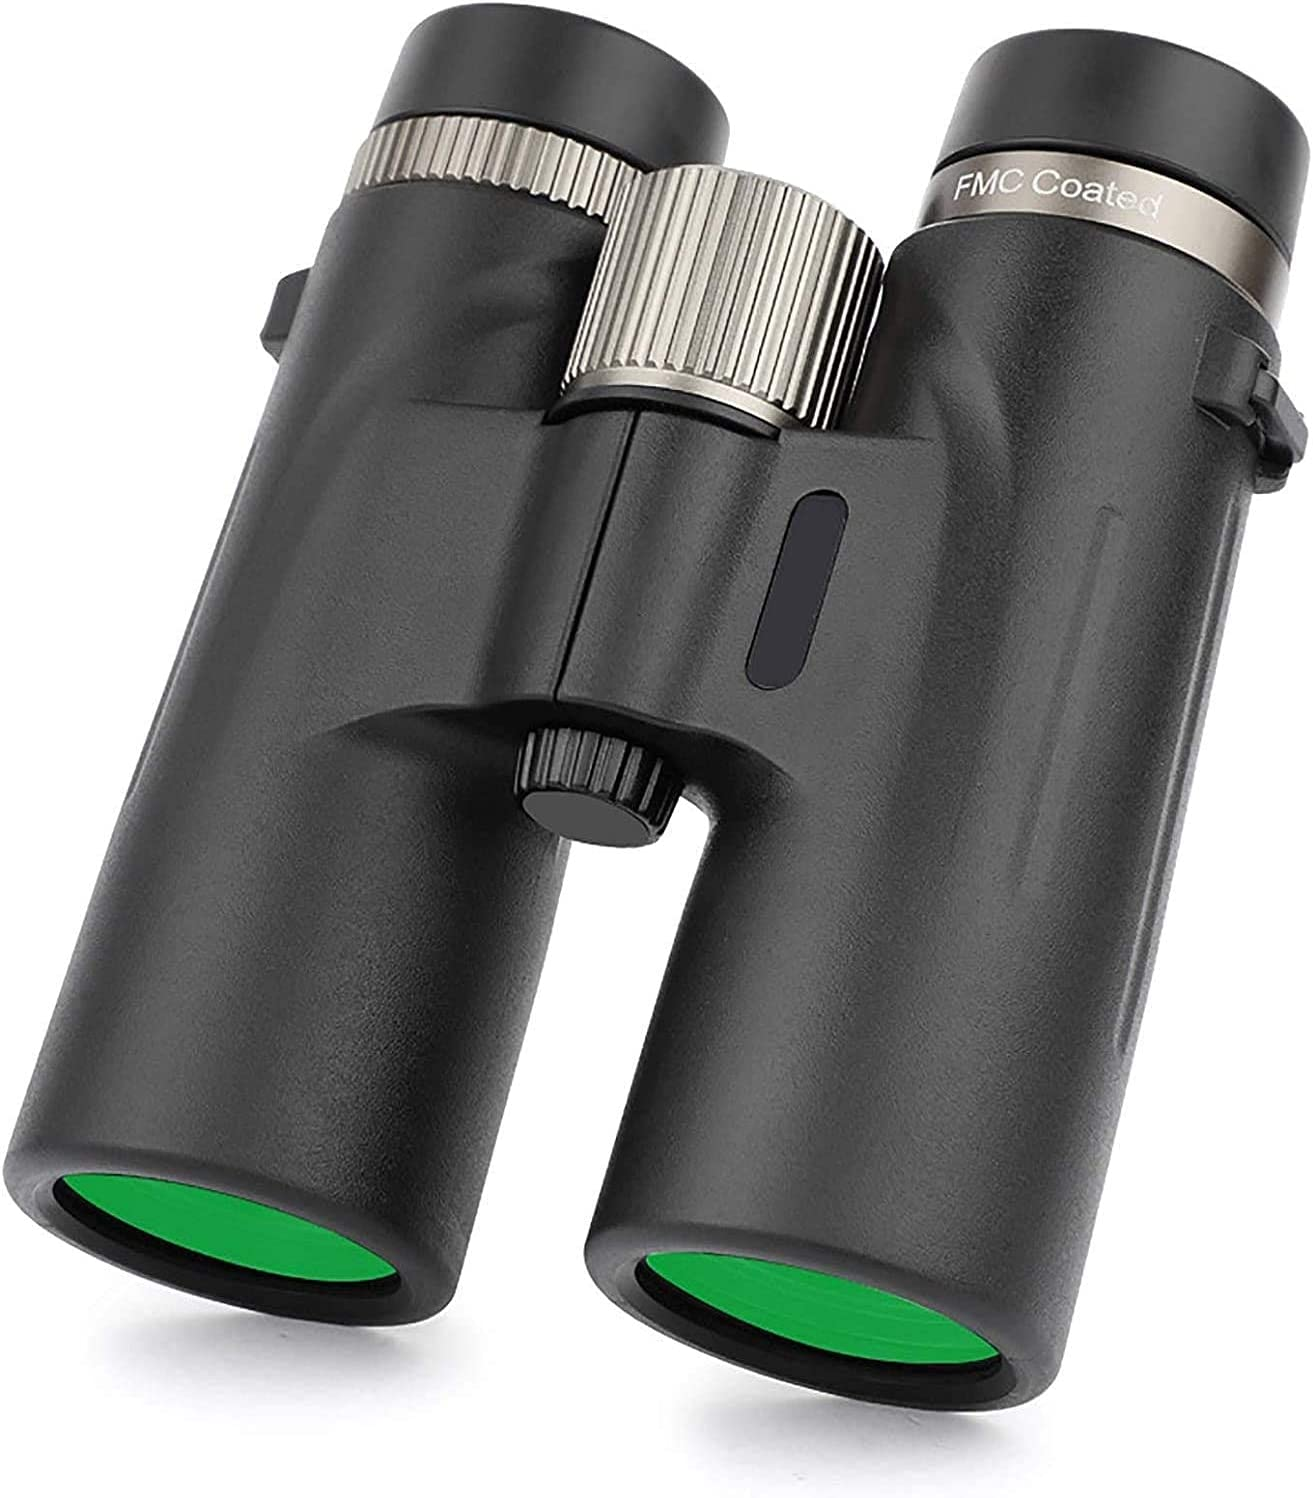 FMOGG Limited time sale Binoculars for Adults Gifts Level Low New sales Tra Light